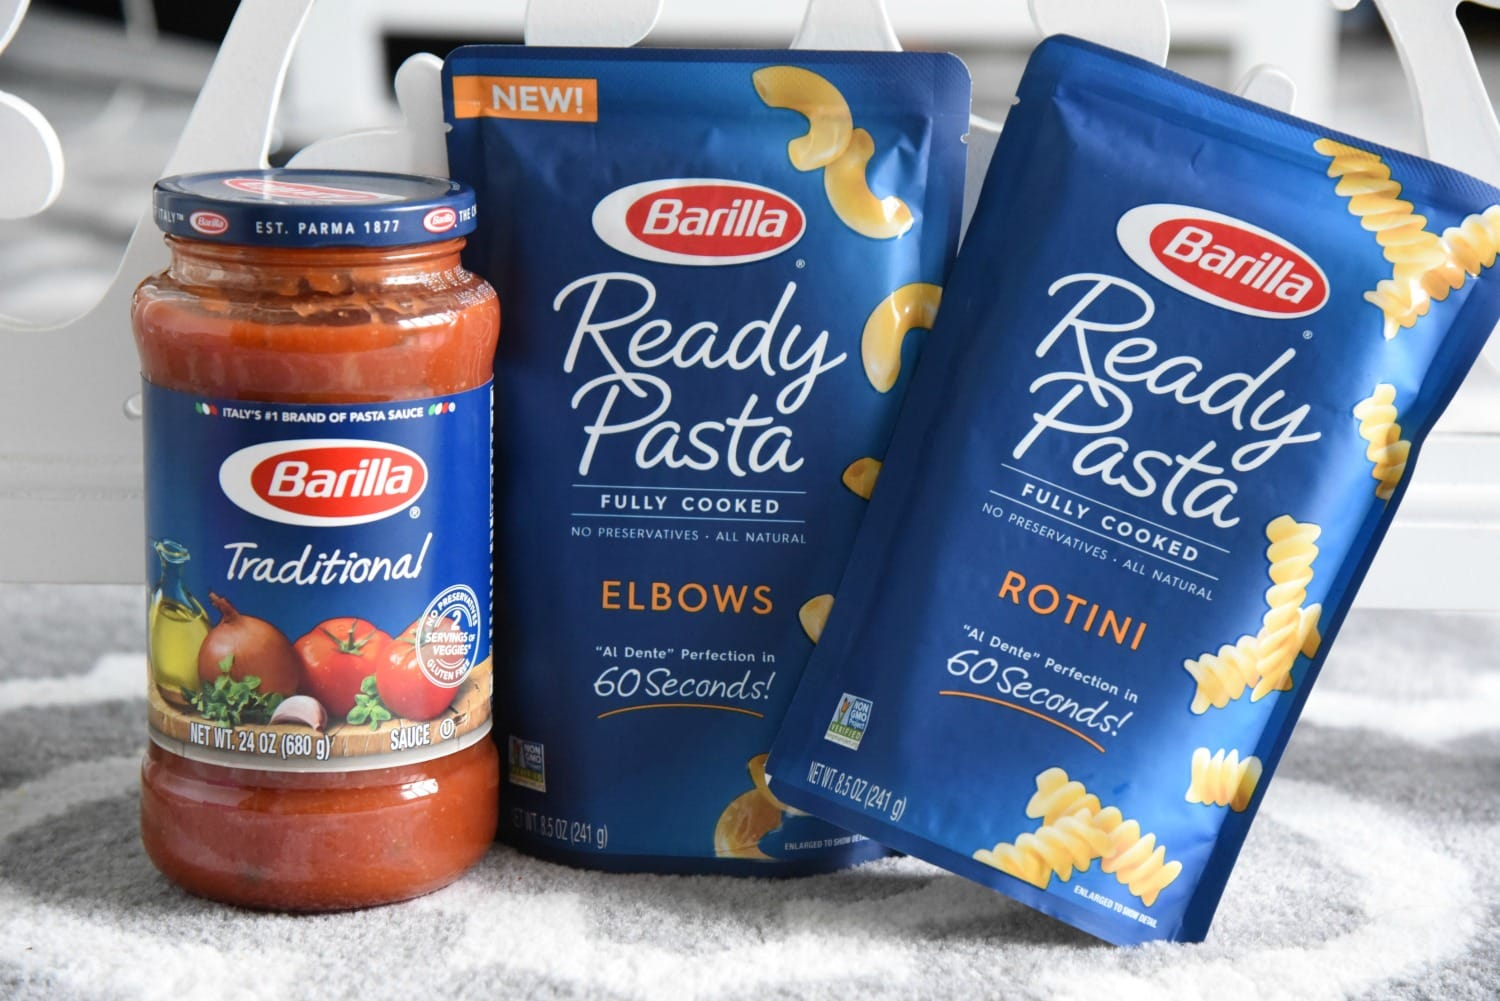 Barilla ready pasta and sauce